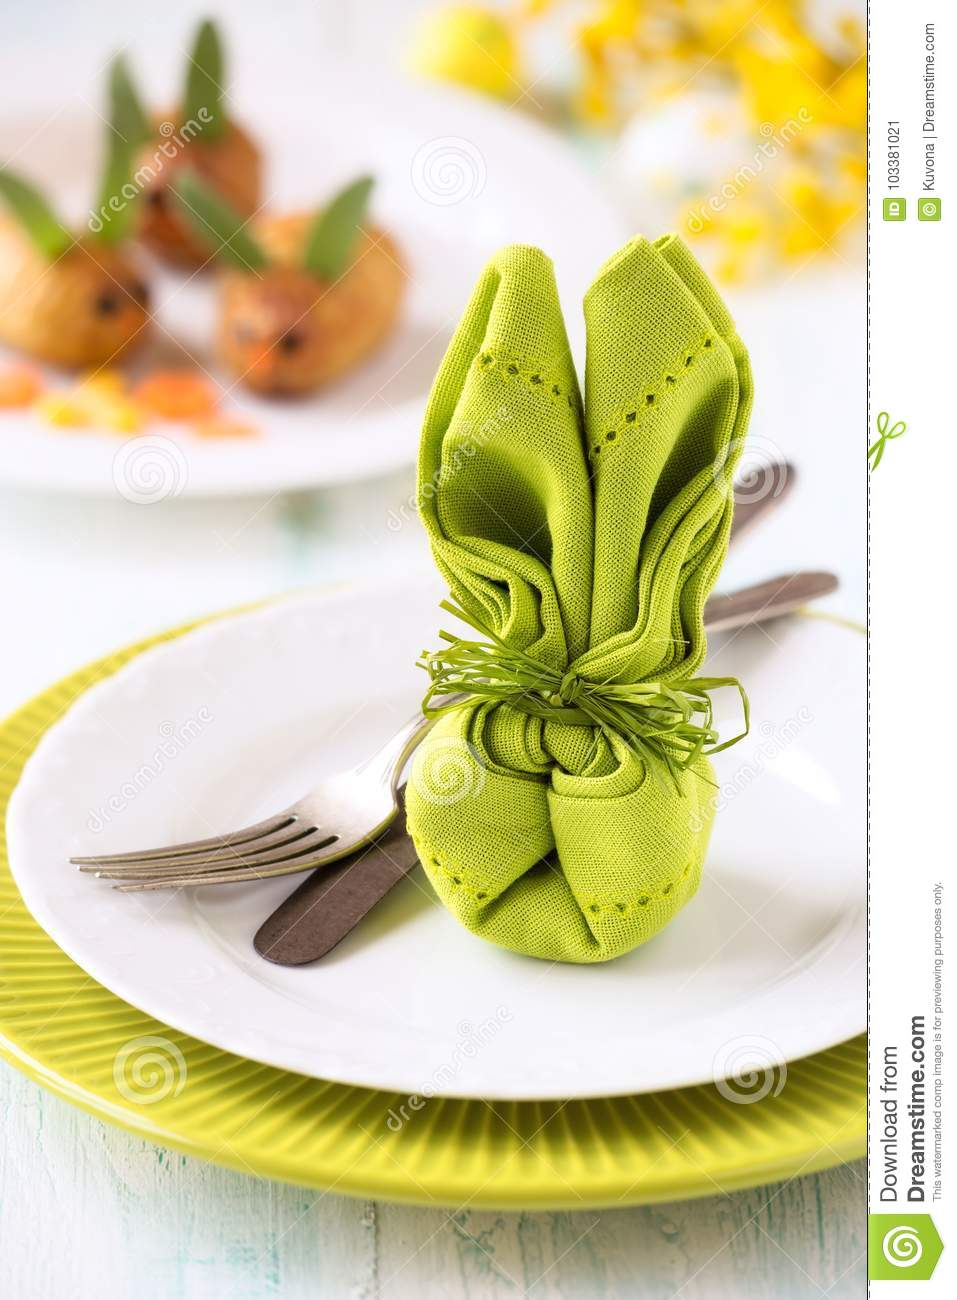 Easter table setting with a napkin folded as a bunny